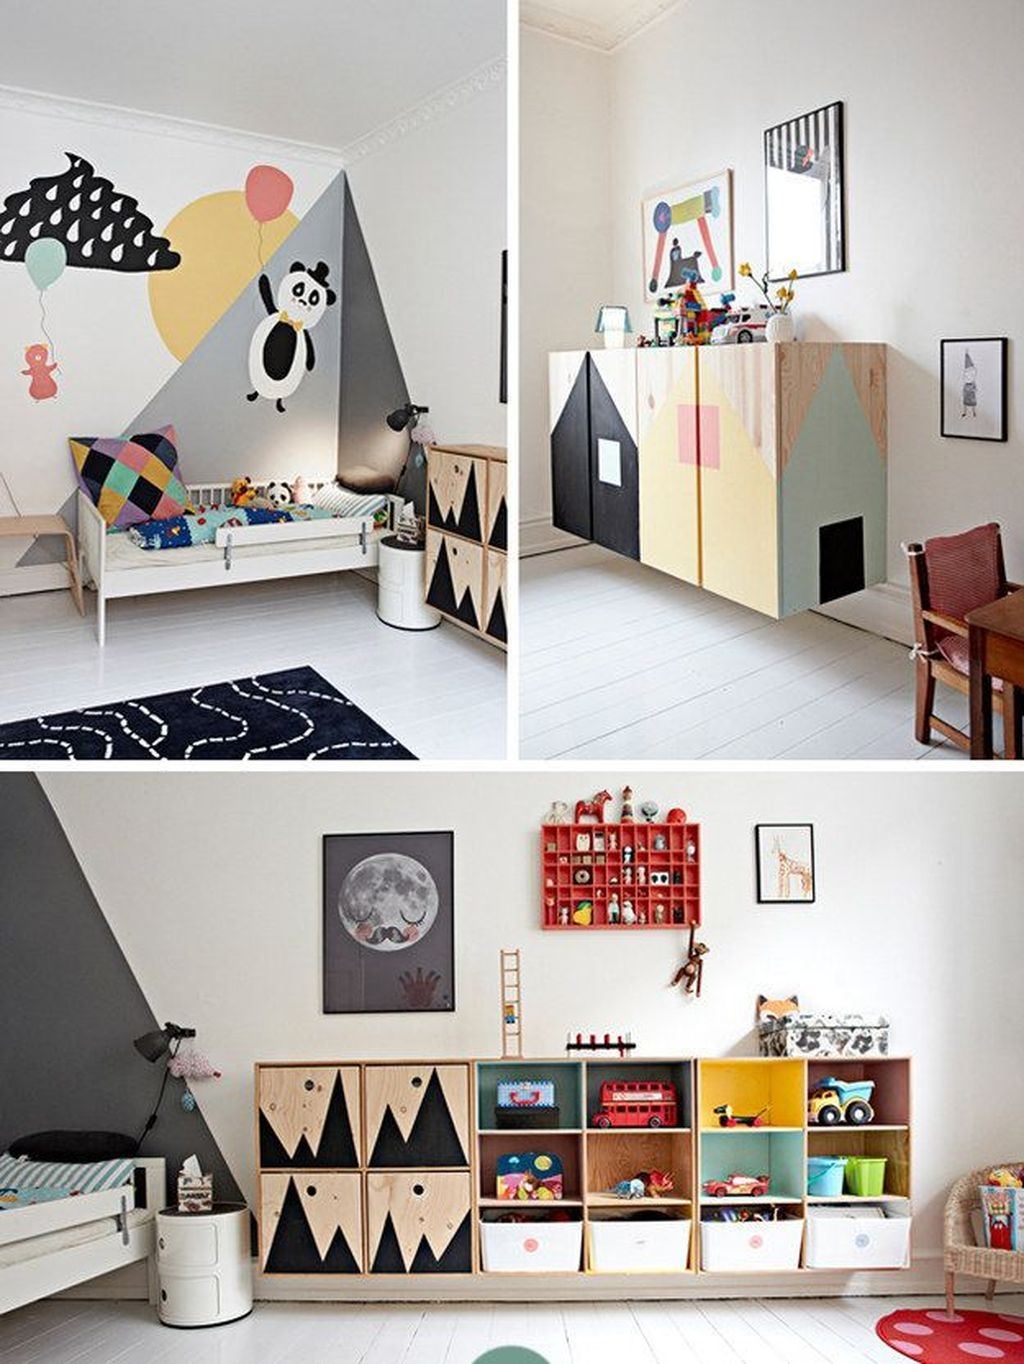 Inspiring Kids Room Design Ideas 25